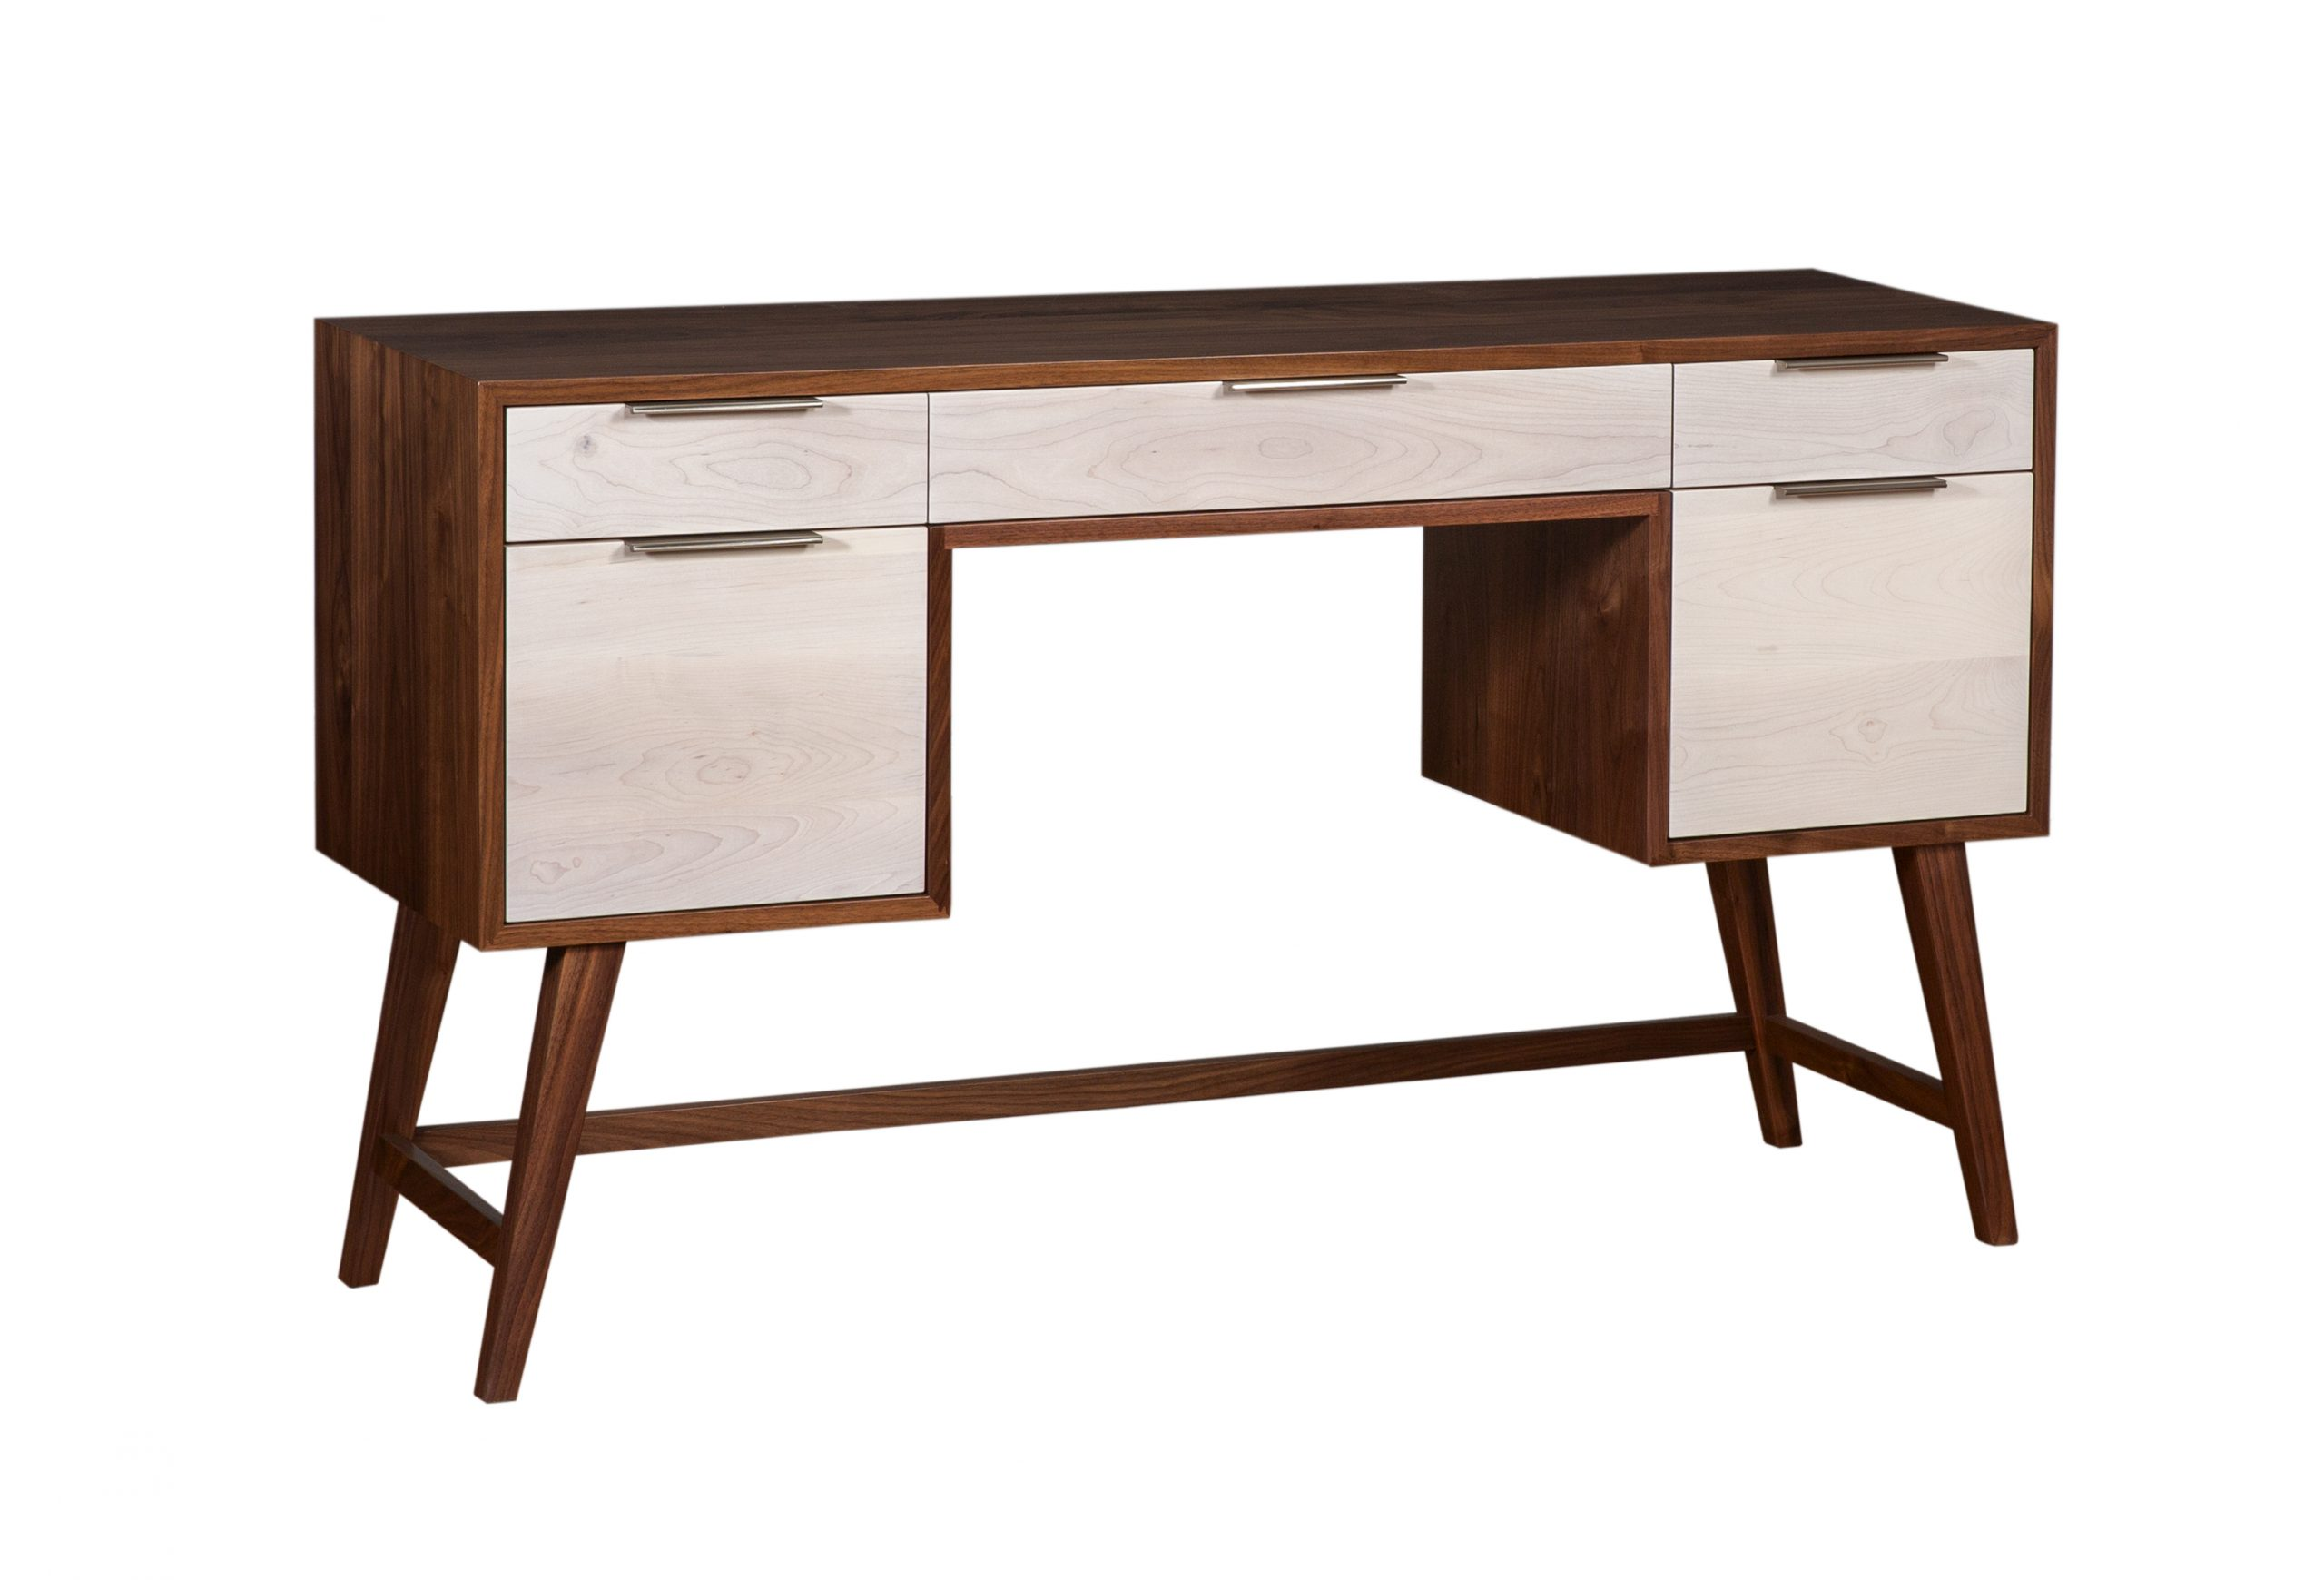 Image of: Danish Mid Century Modern 5 Drawer Writing Desk Martin S Furniture